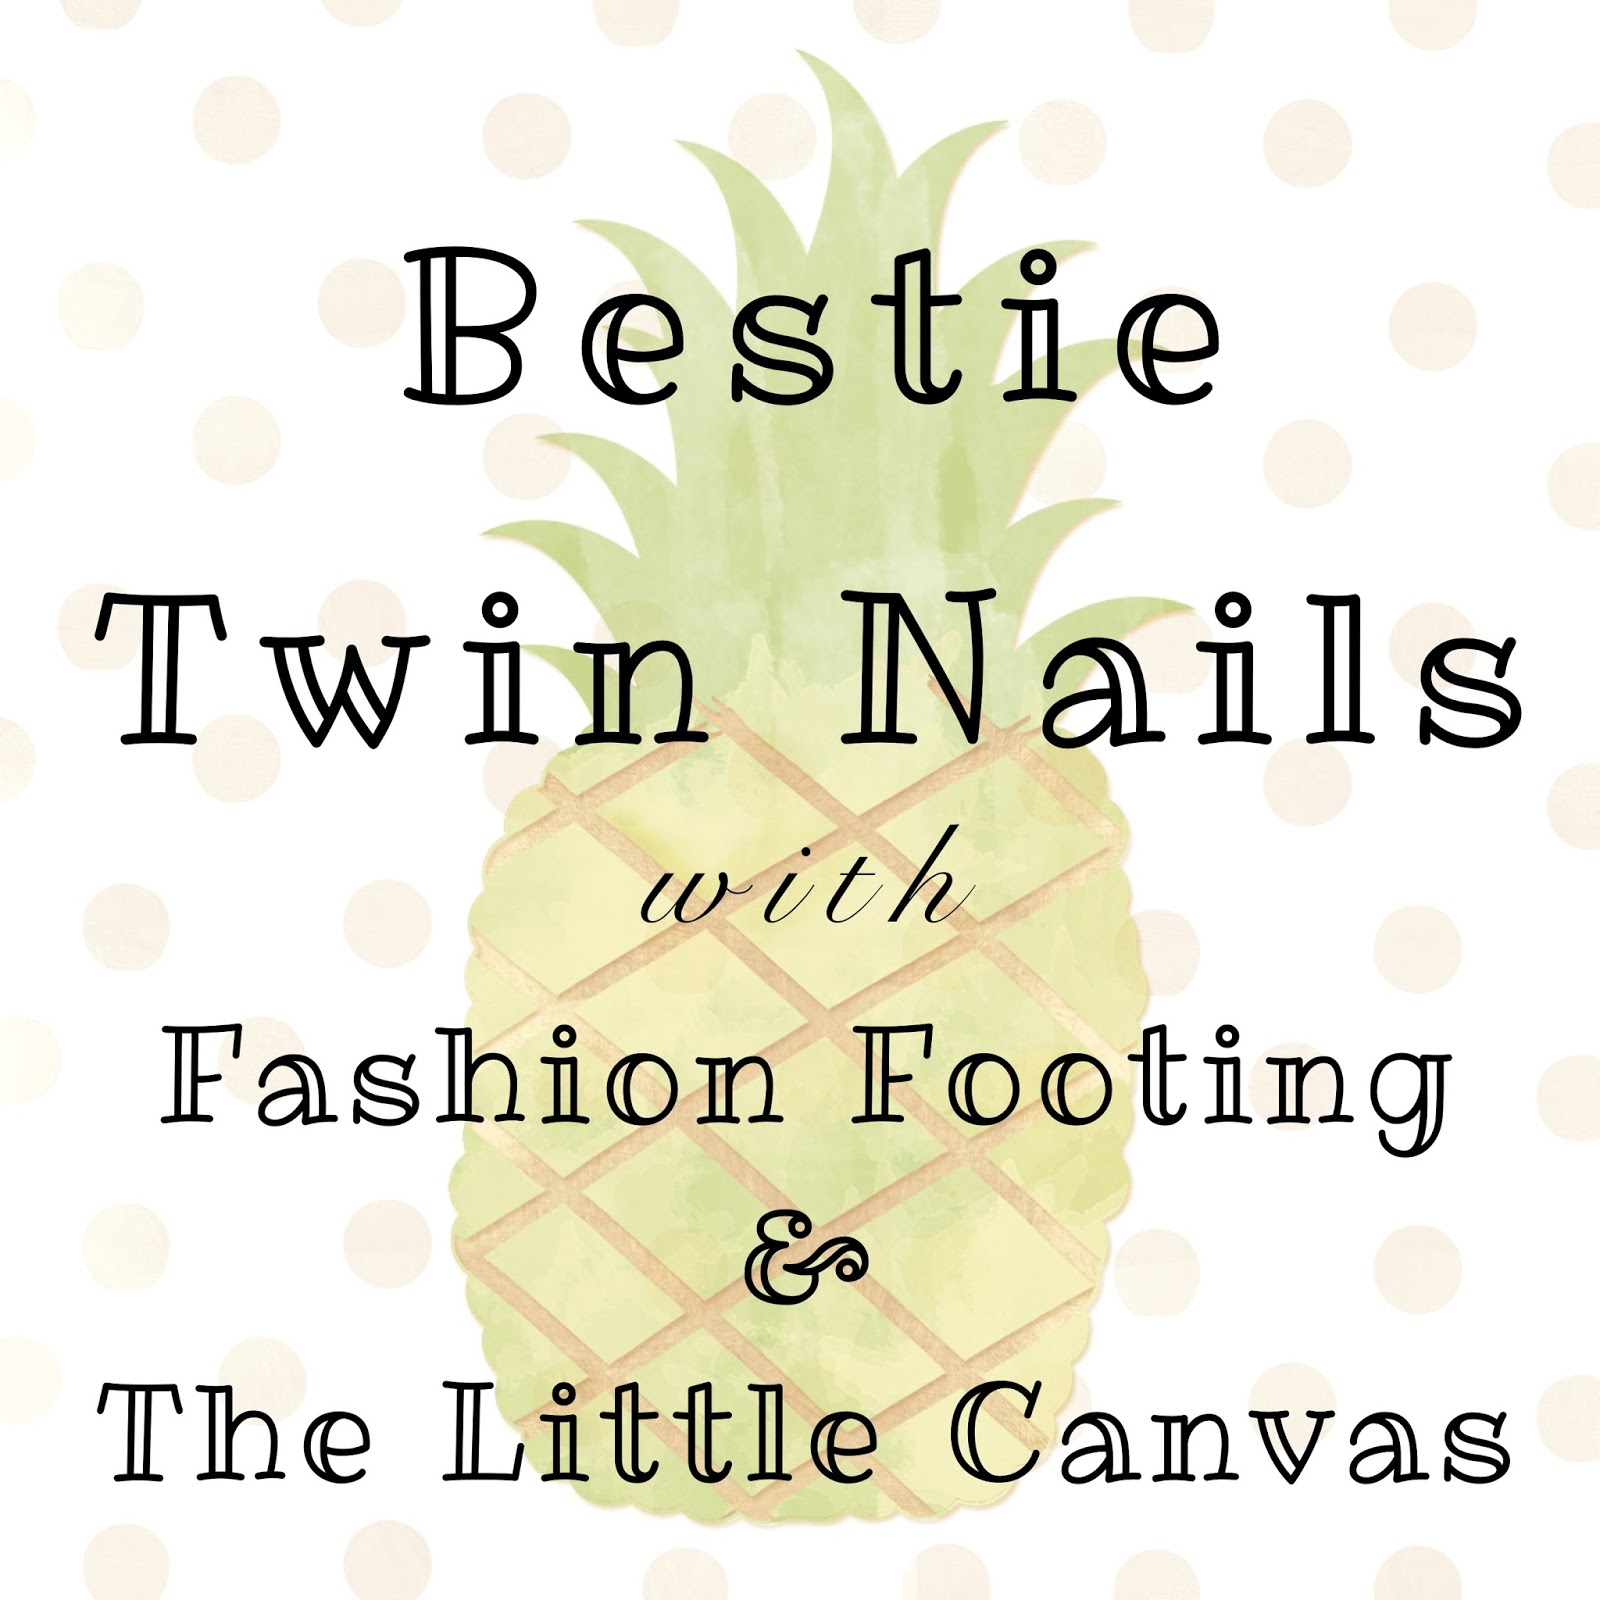 The Little Canvas: Fashion Footing: Round 23 Of Bestie Twin Nails With The